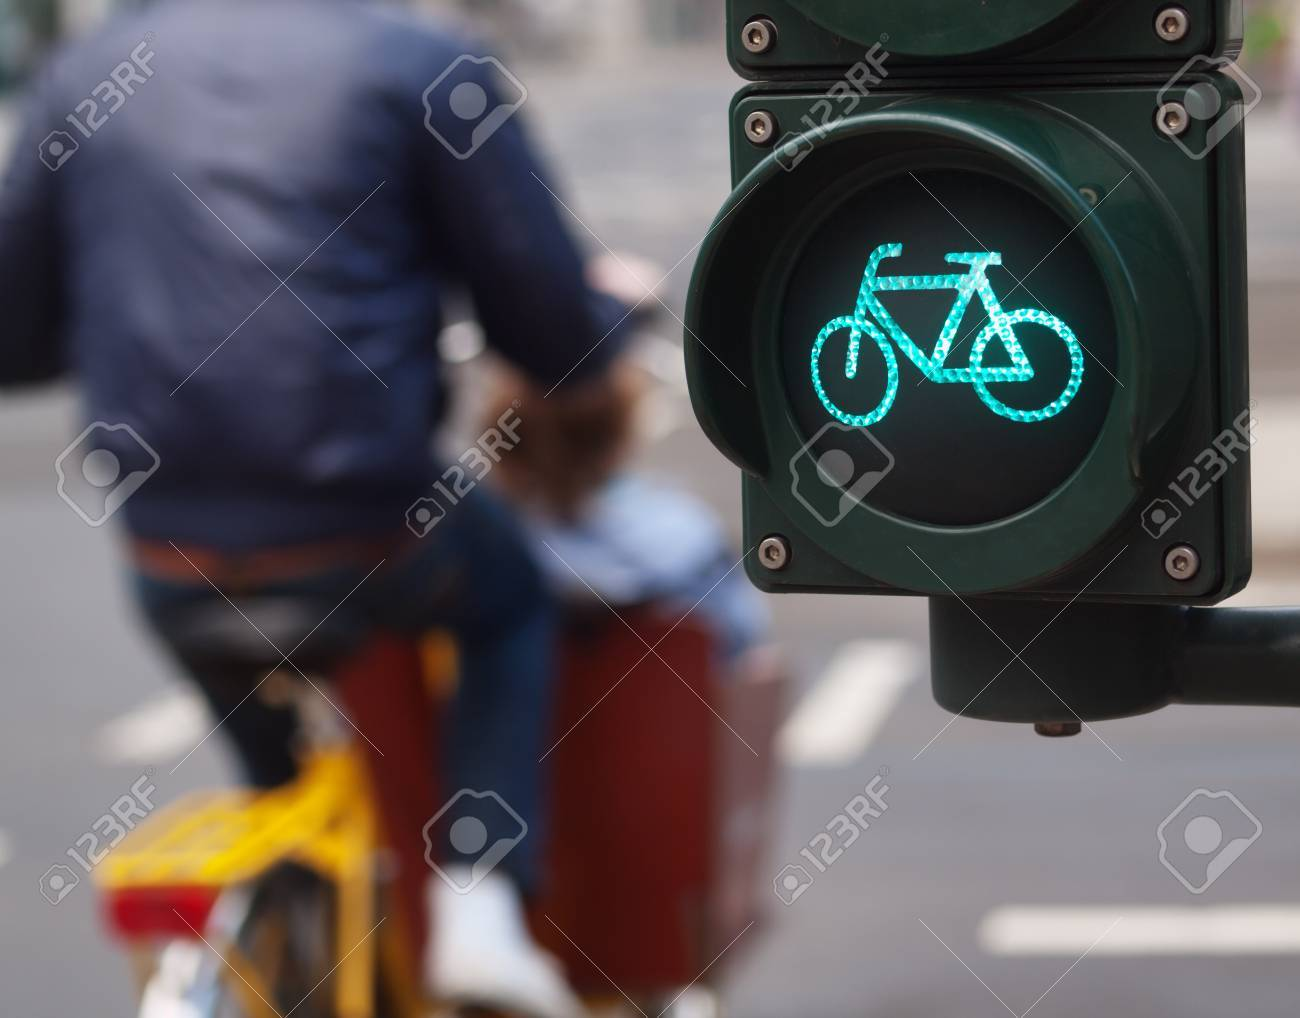 Bicycle sign on a traffic light Stock Photo - 9900182